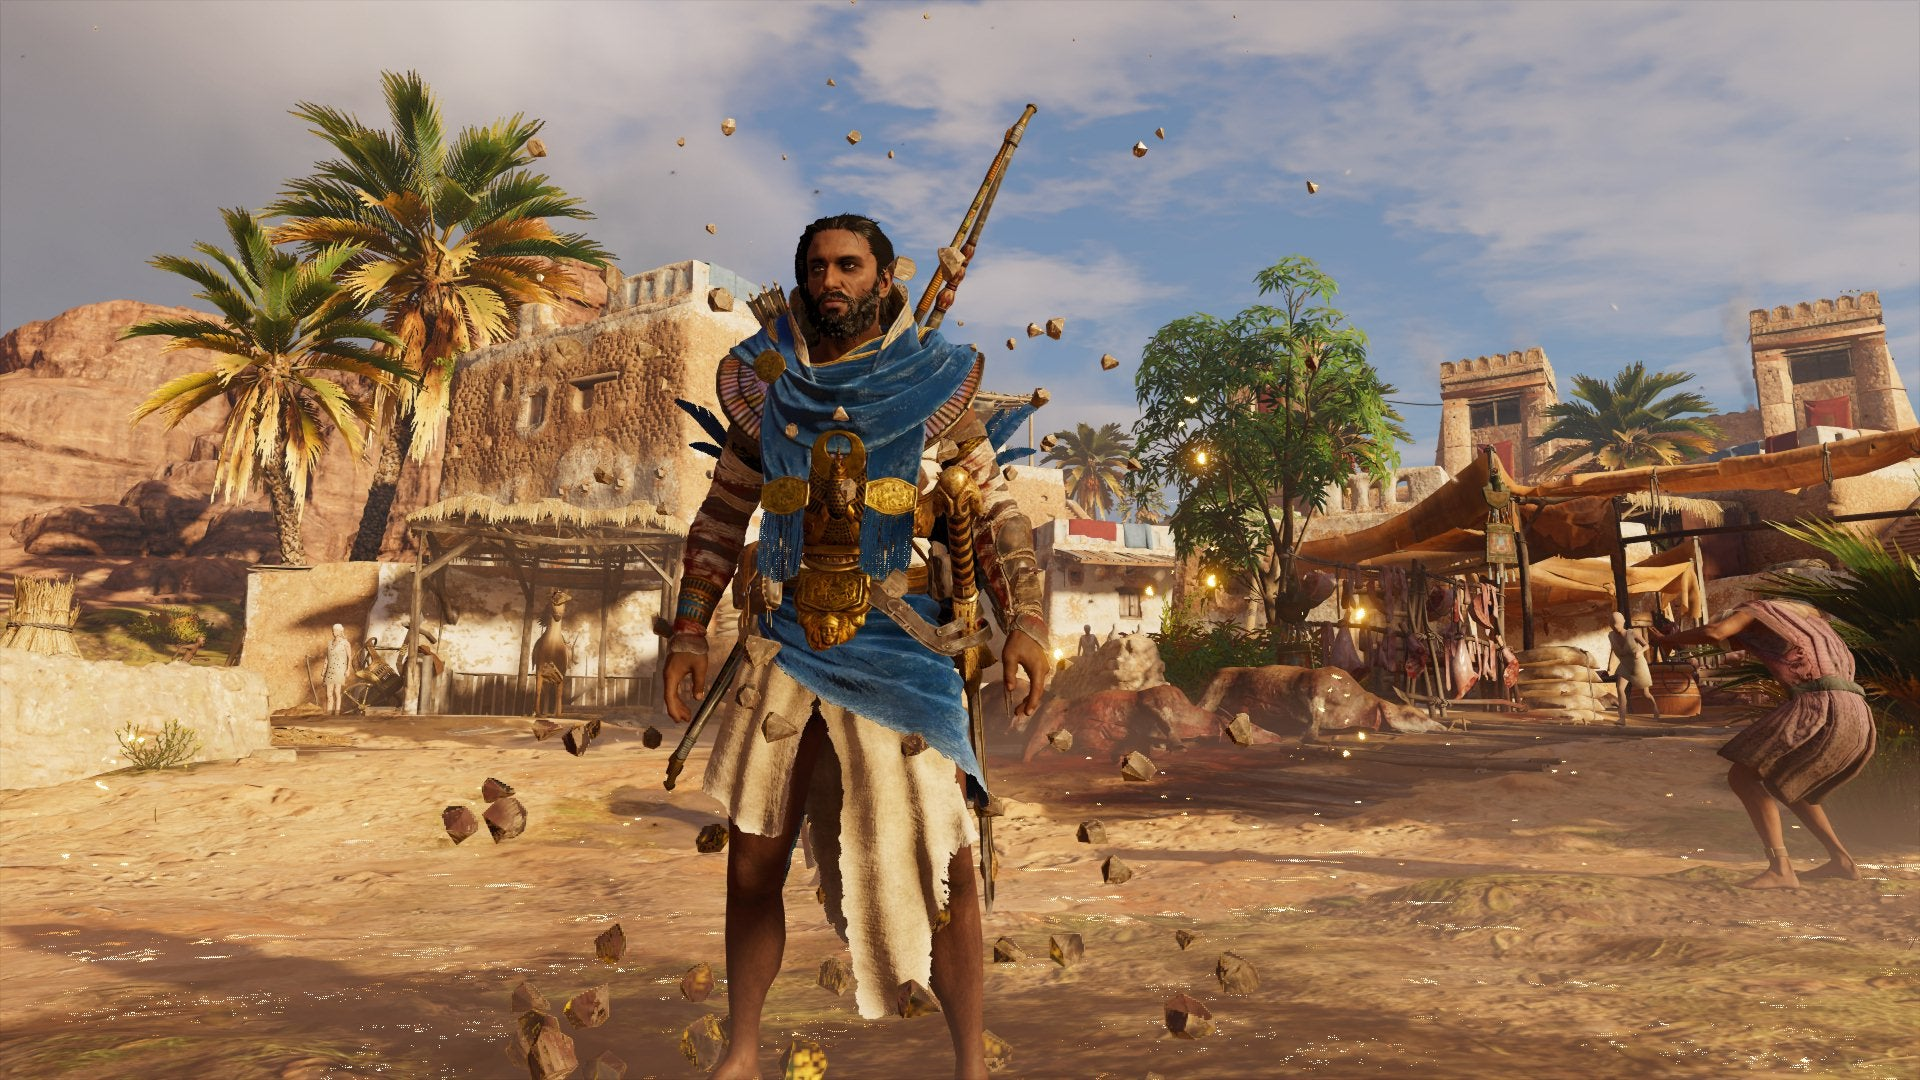 Assassin's Creed Went Full Crazy, And I Love It